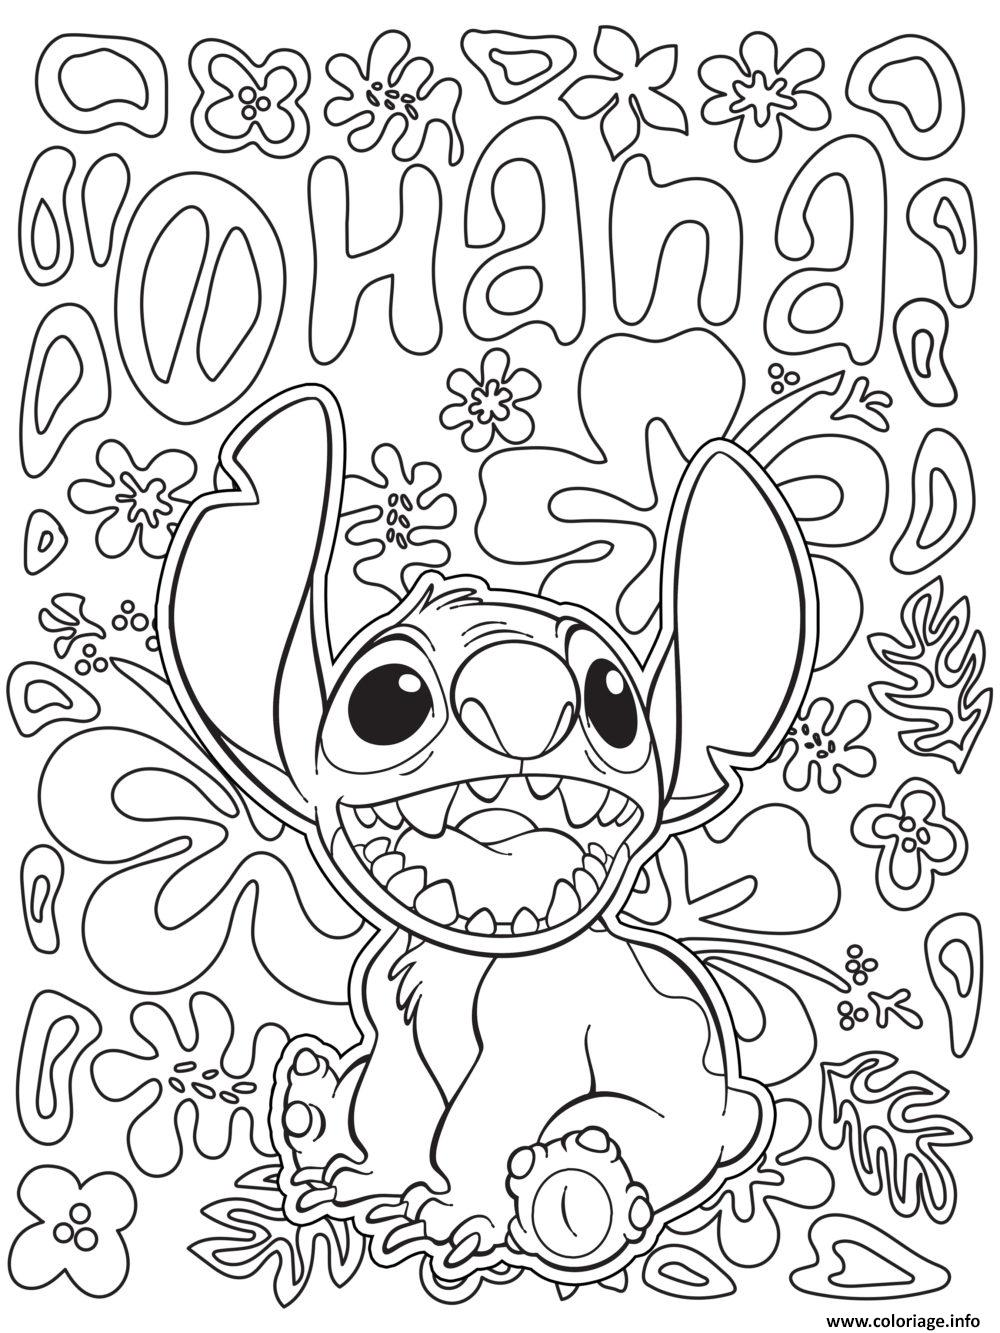 Coloriage Mandala Disney Facile Stitch From Lilo And Stitch Dessin   Imprimer